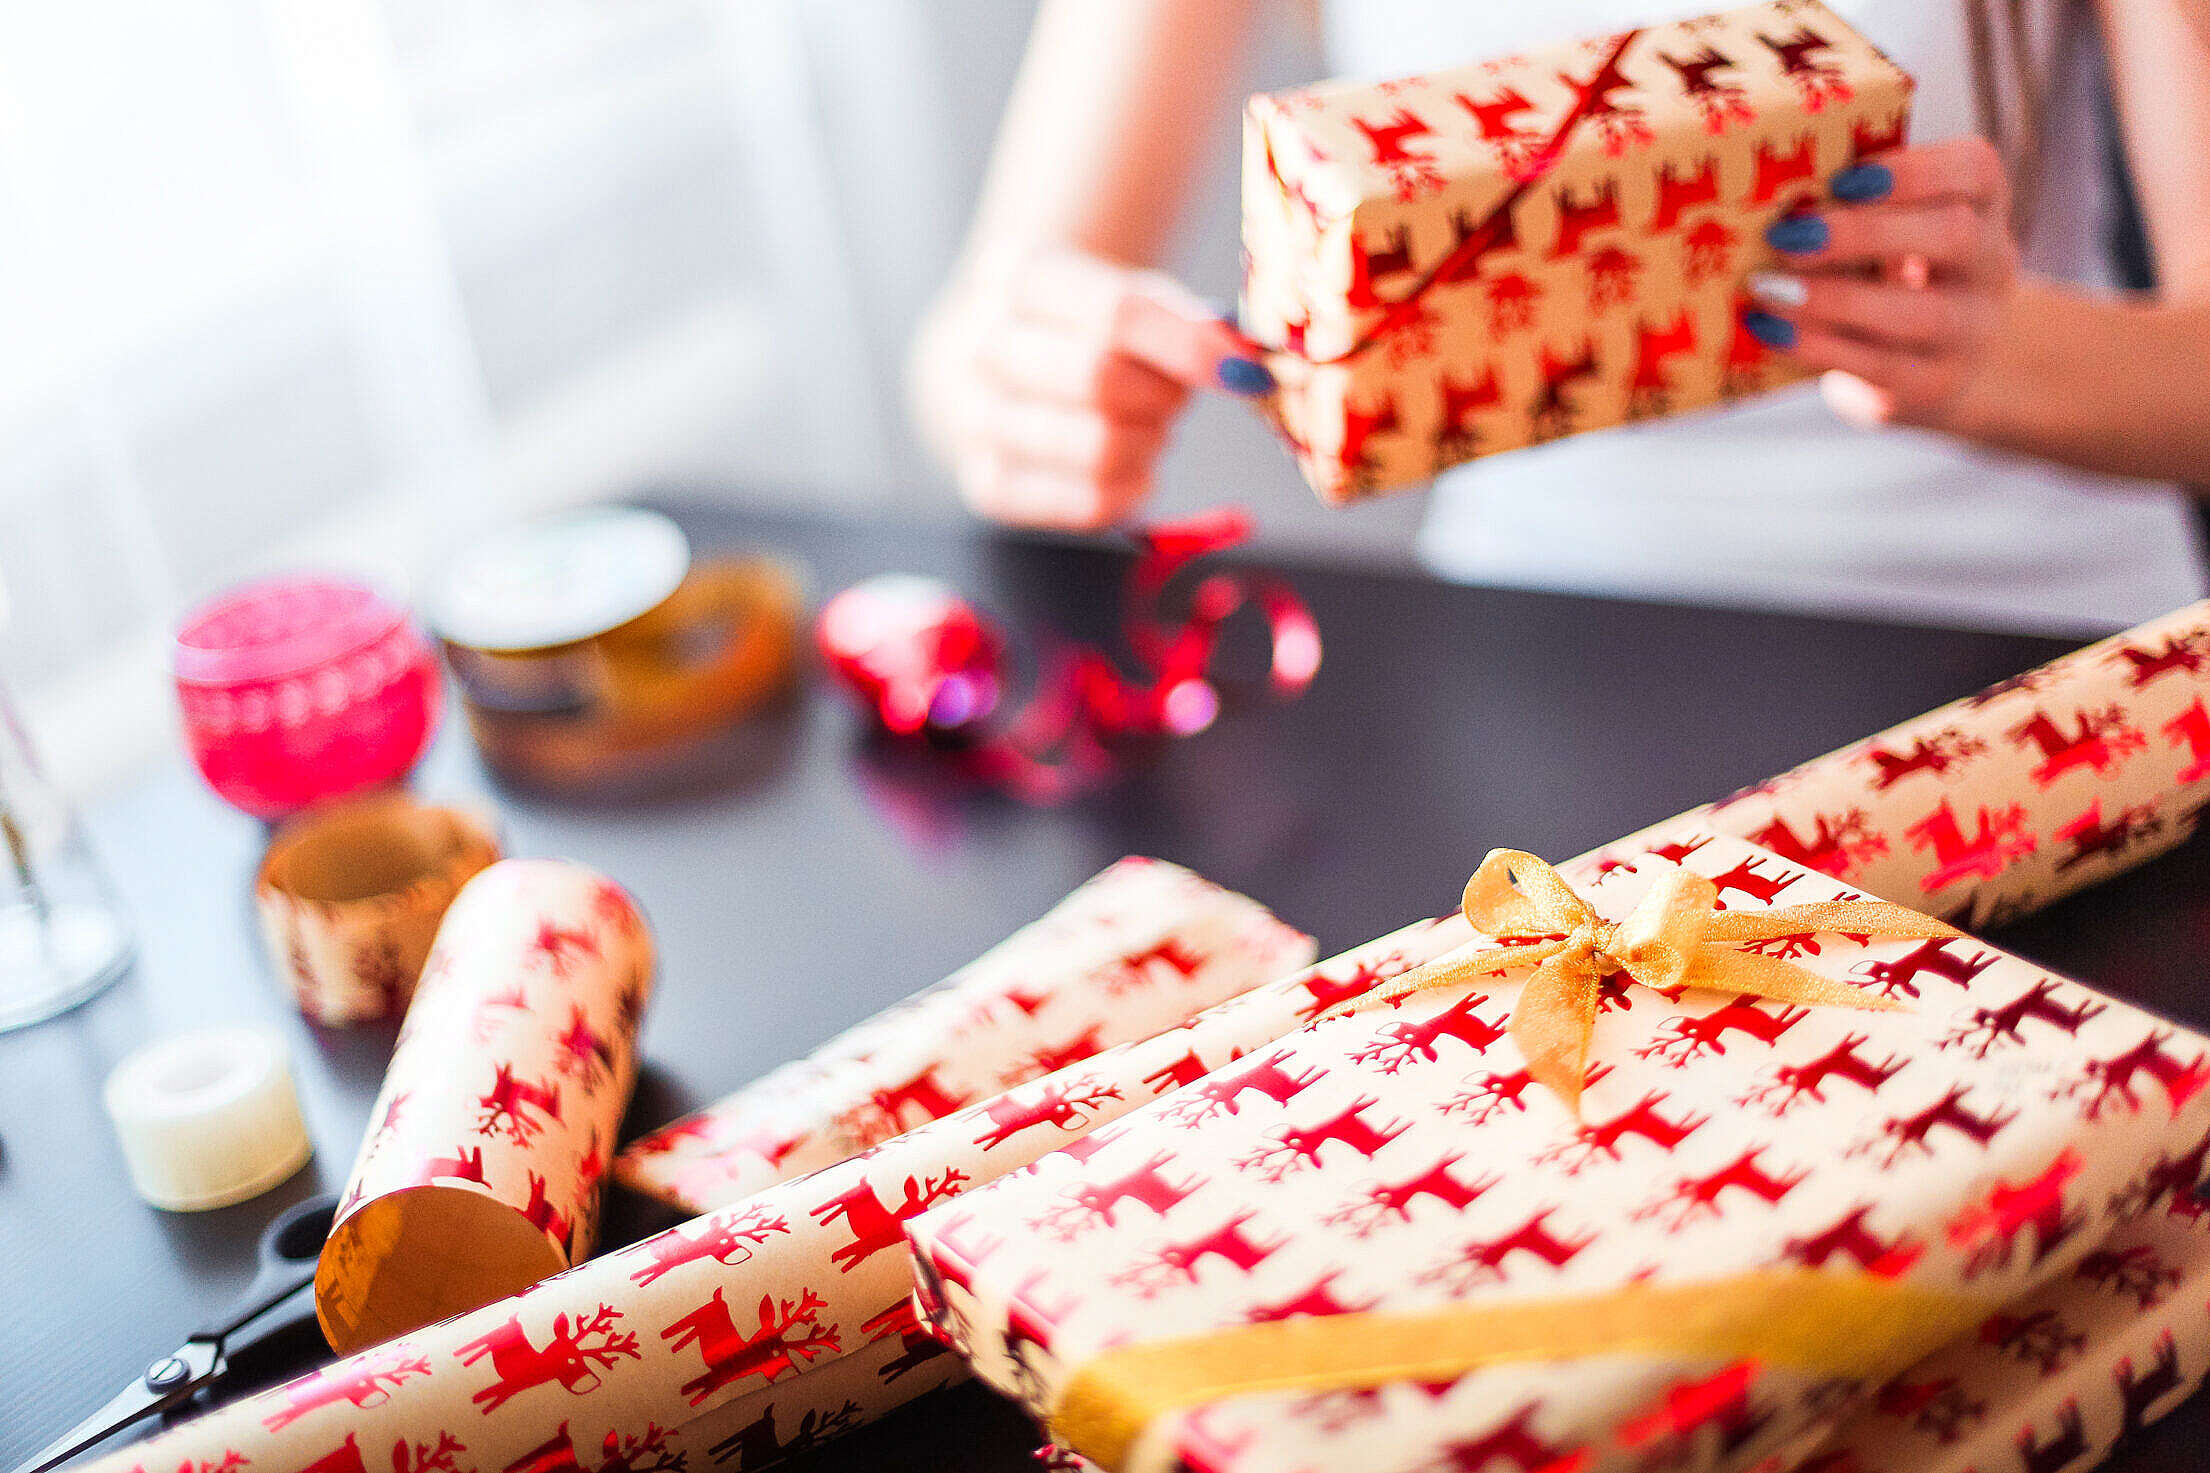 Christmas Gift Wrapping Free Stock Photo